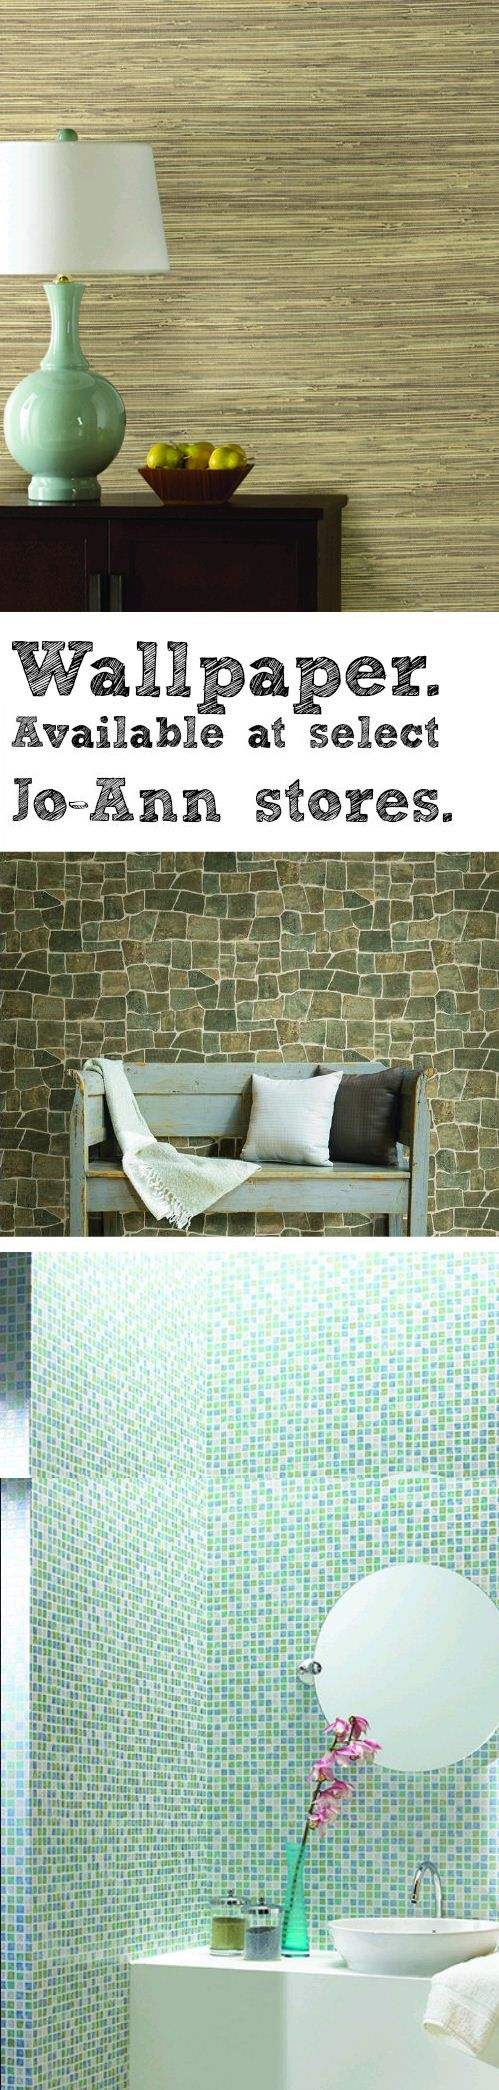 After taking a 20 year vacation, wallpaper is back on trend. And available at select local Jo-Ann stores. Vacation was good to it, this wallpaper has attitude.: Attitude, Joanne Stores, Years Vacations, Selection Wallpapers, Jo Anne, L Oeil Wallpapers, Decor Organizations, 20 Years, Local Joanne